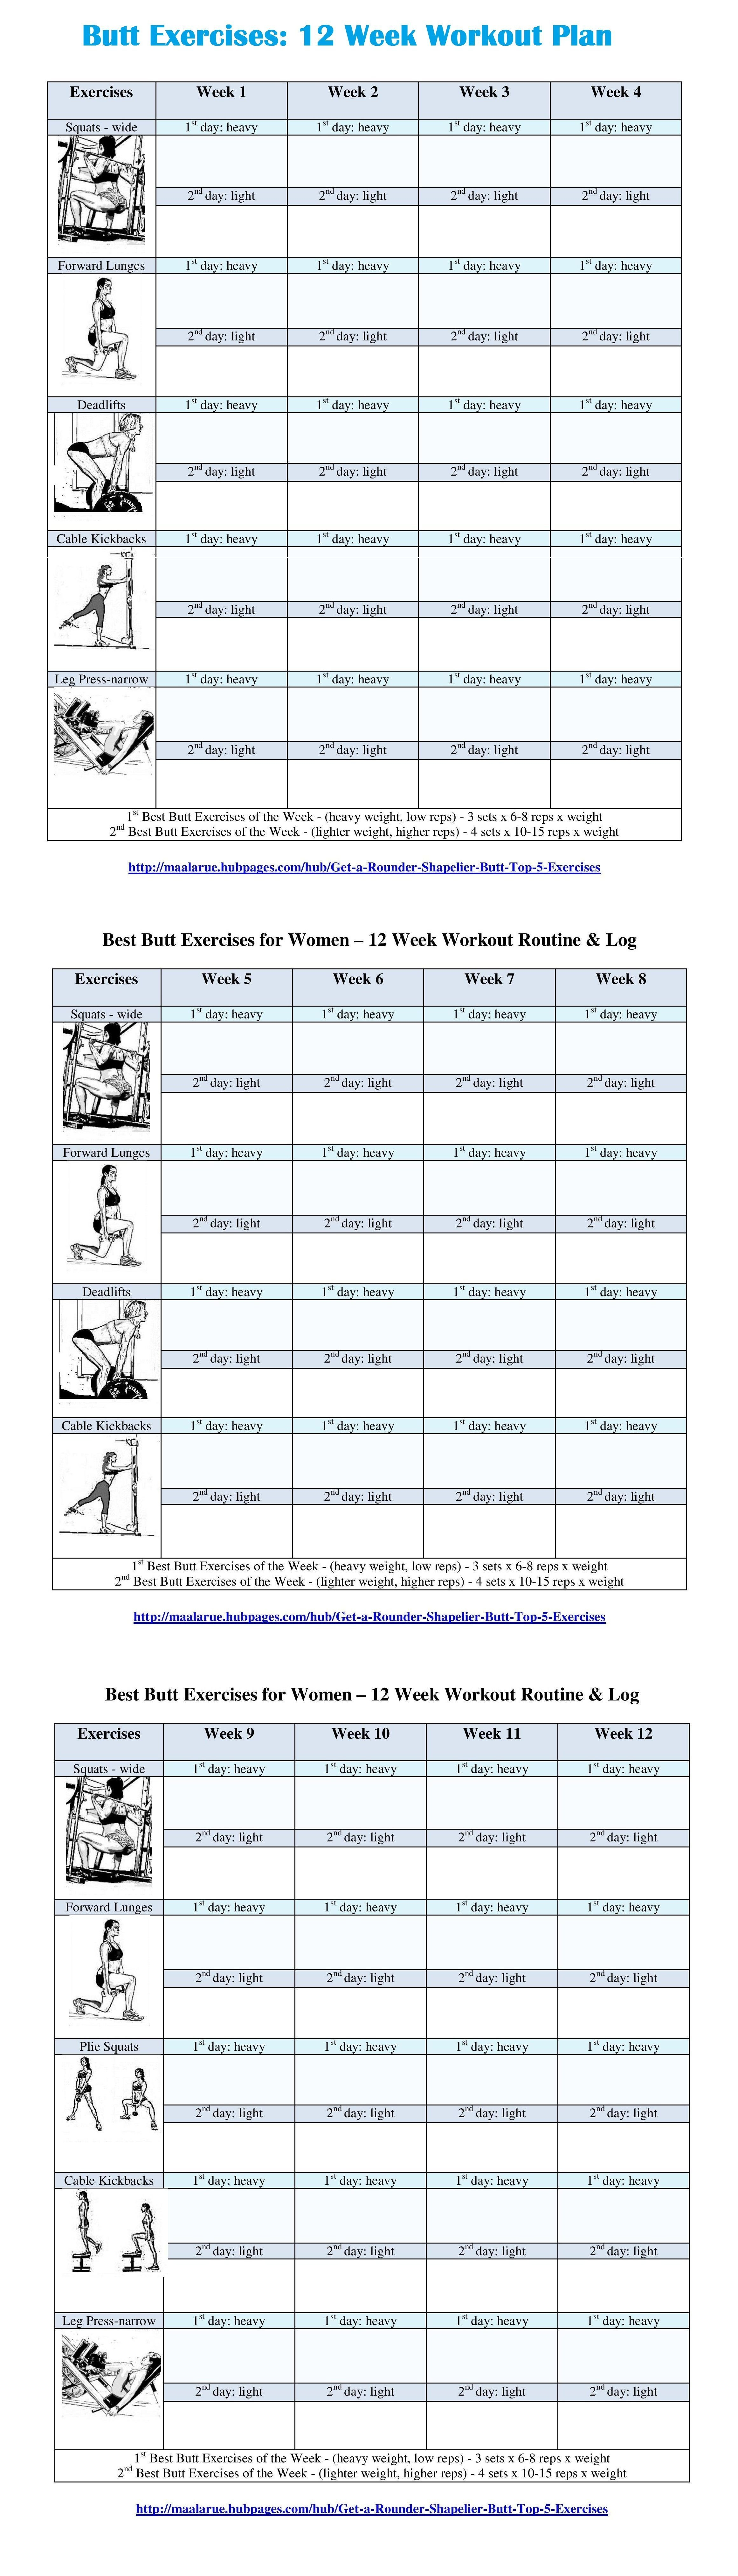 Best Butt Workouts For Women - Free Printable 12 Week Butt Workout Plan - Free Printable Gym Workout Plans